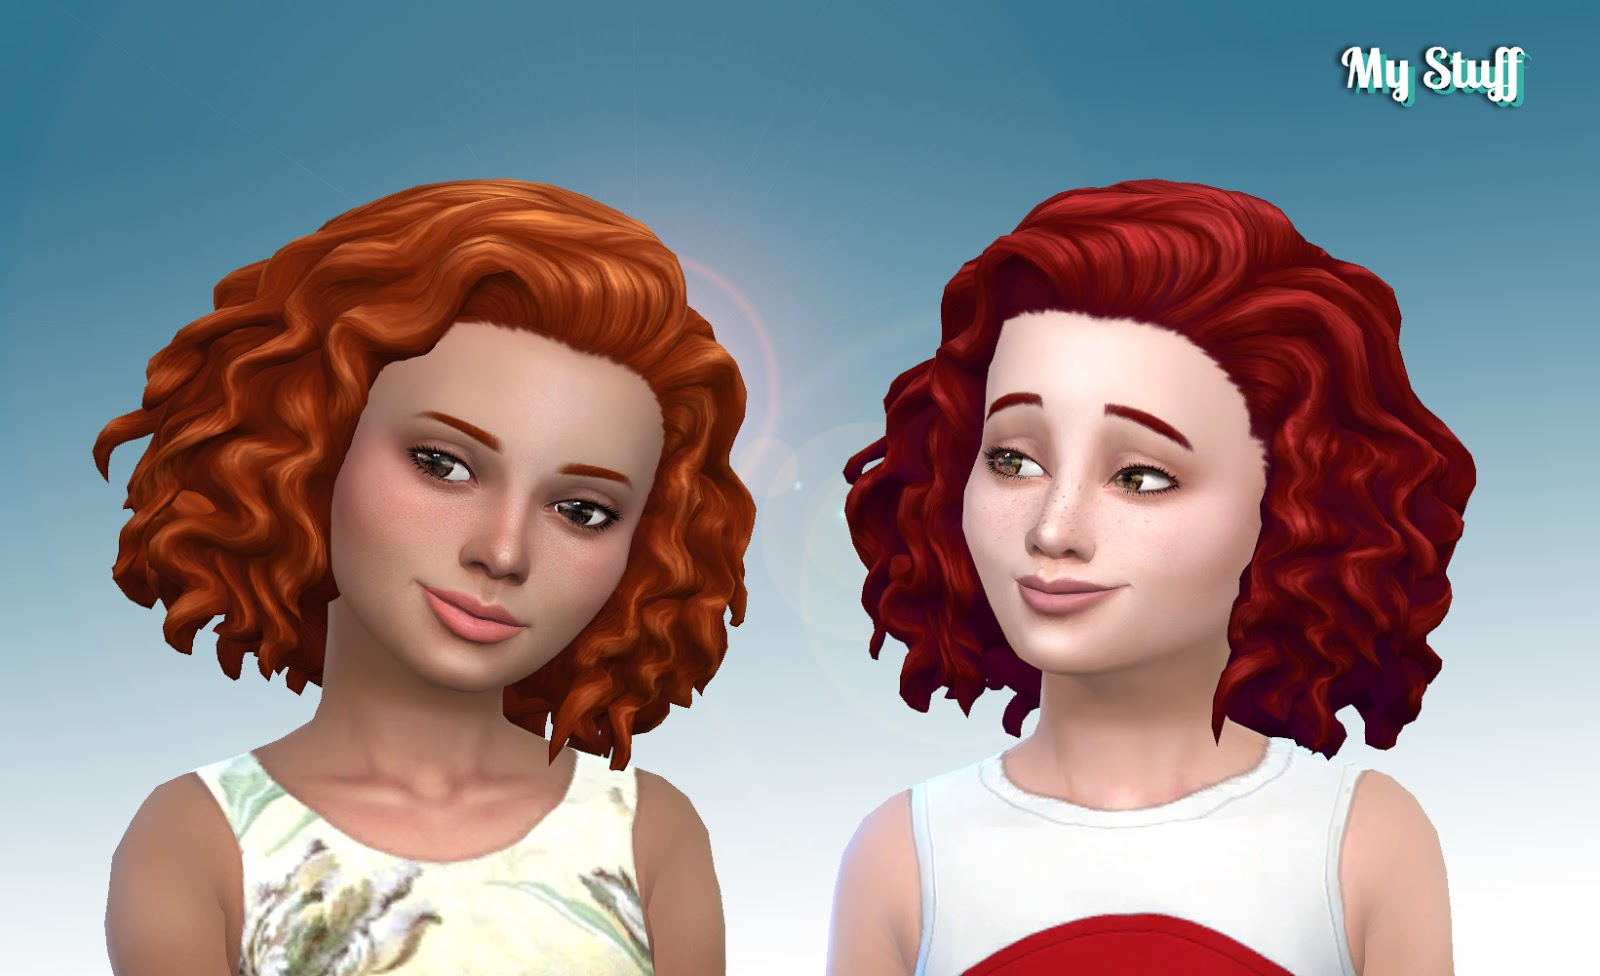 Sims 4 Hairs Mystufforigin Medium Mid Curly Hair For Girls